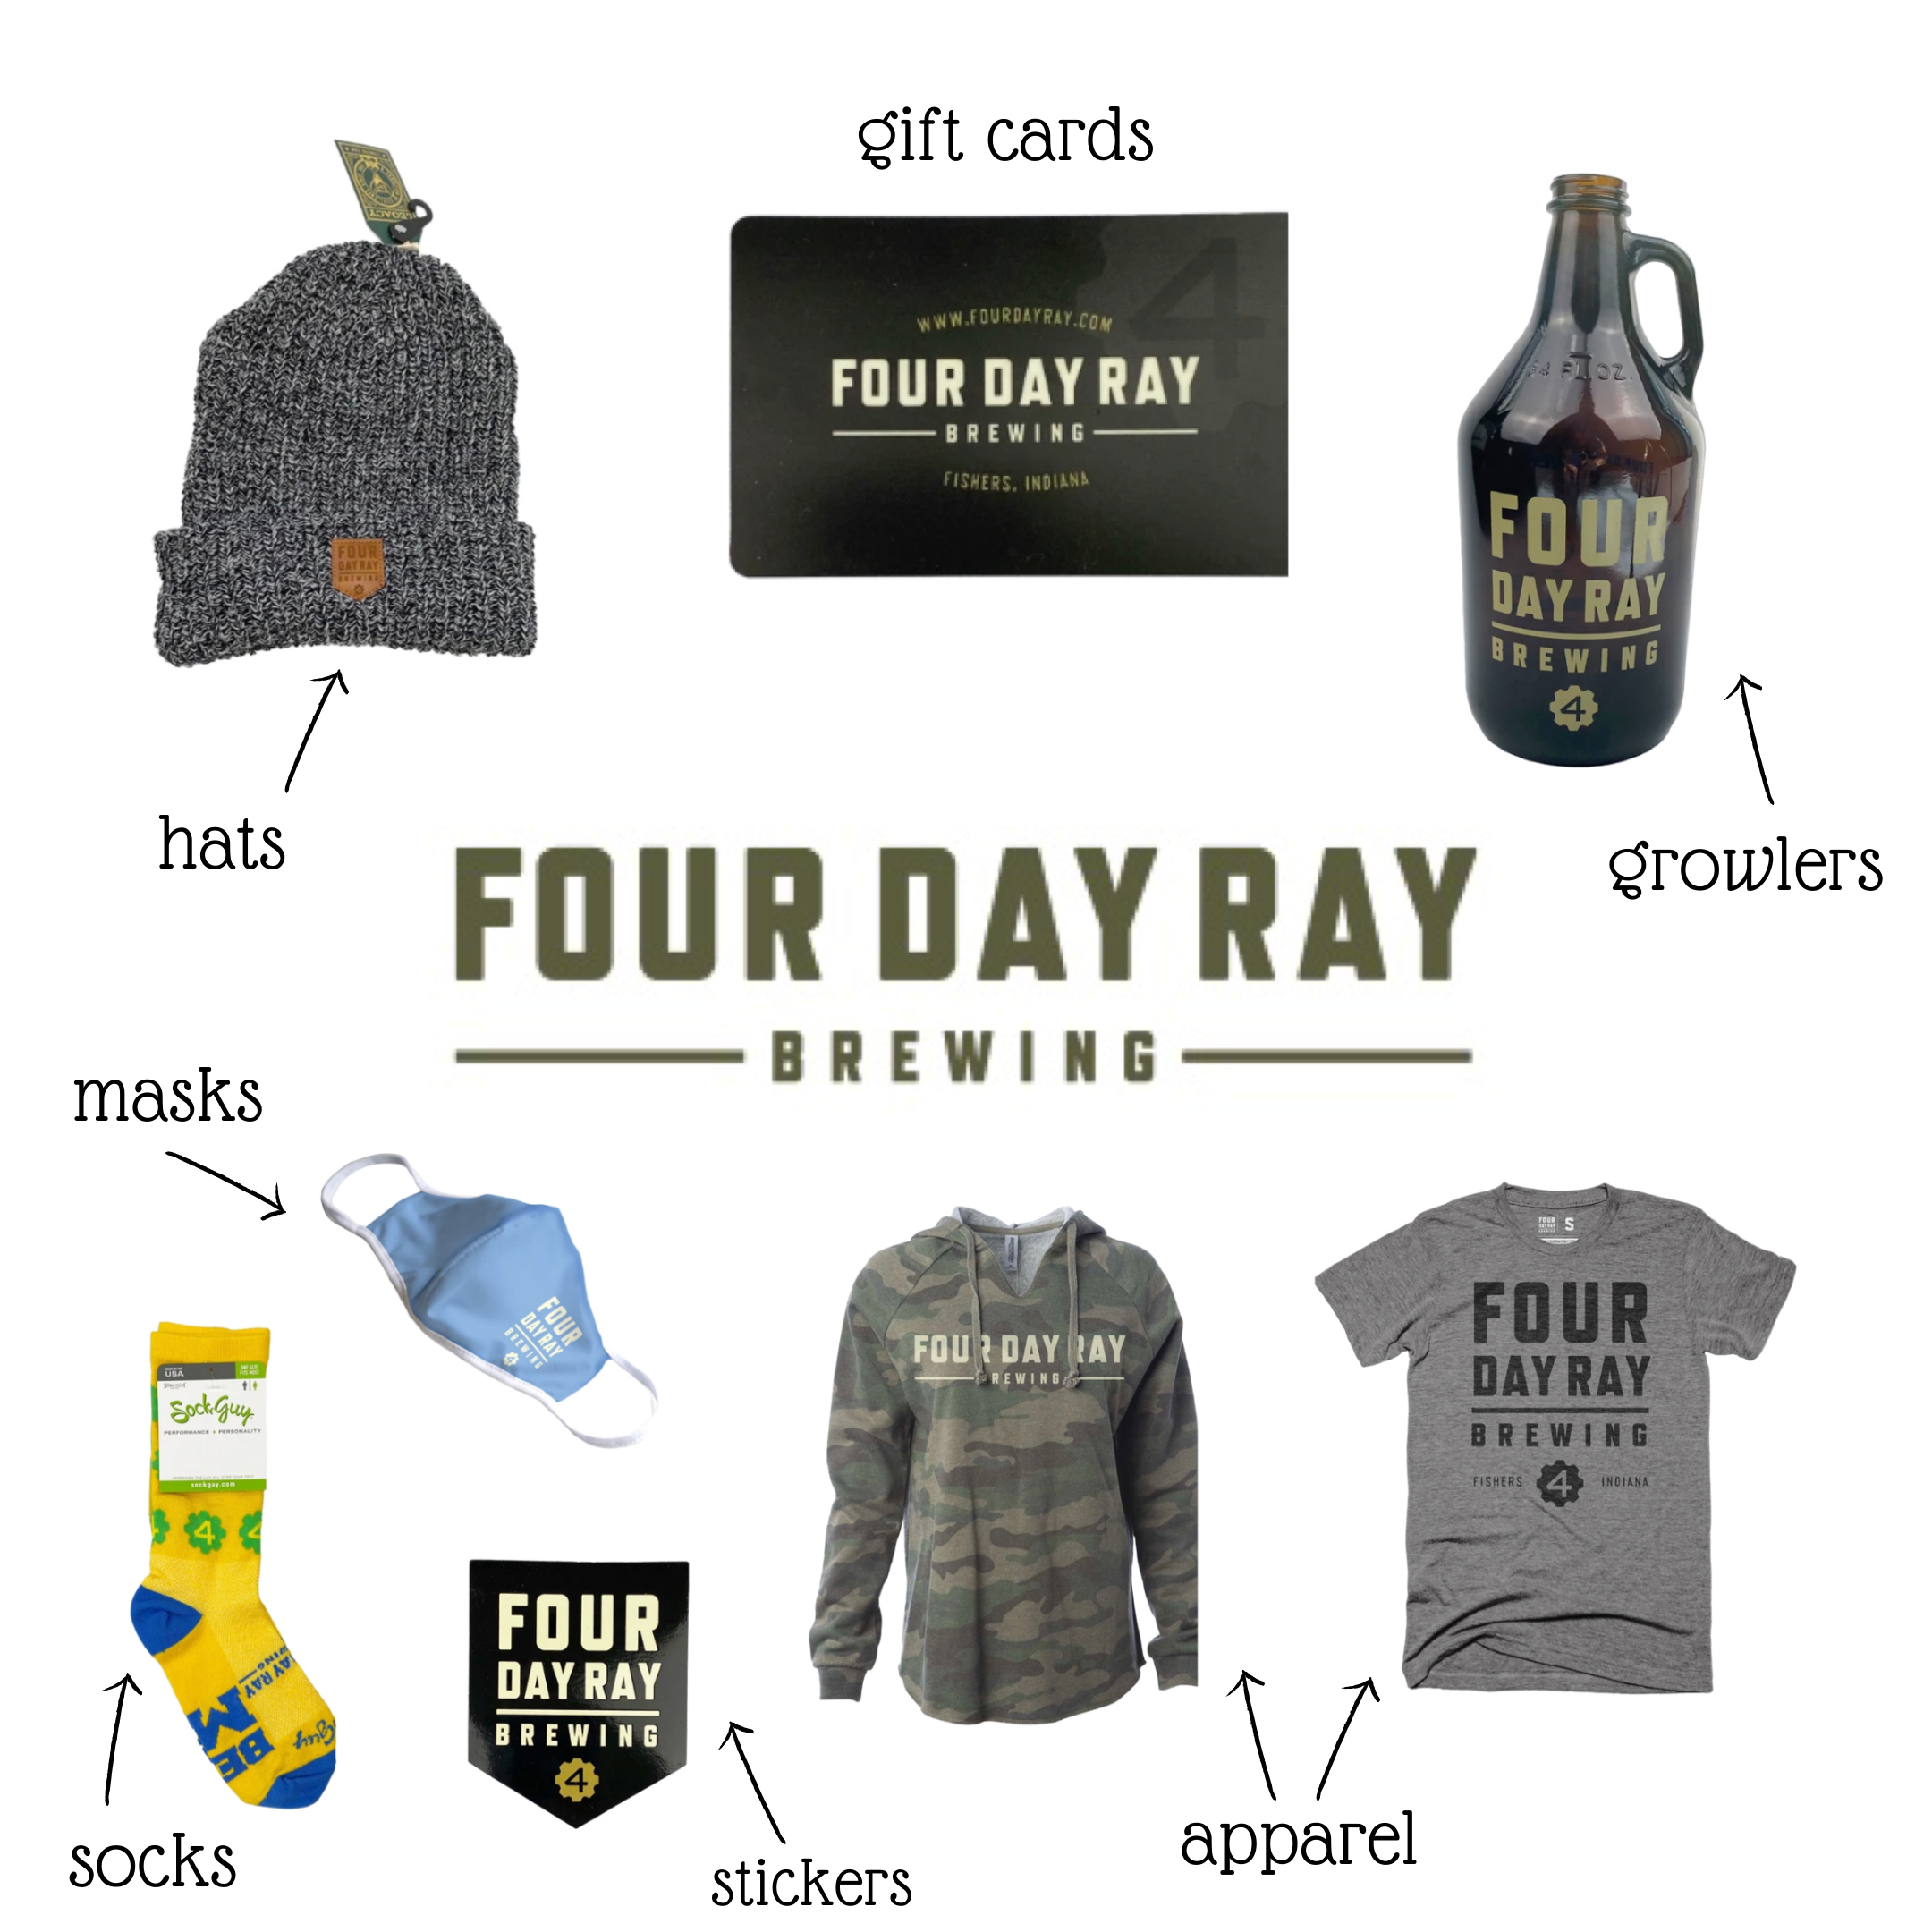 four day ray gifts